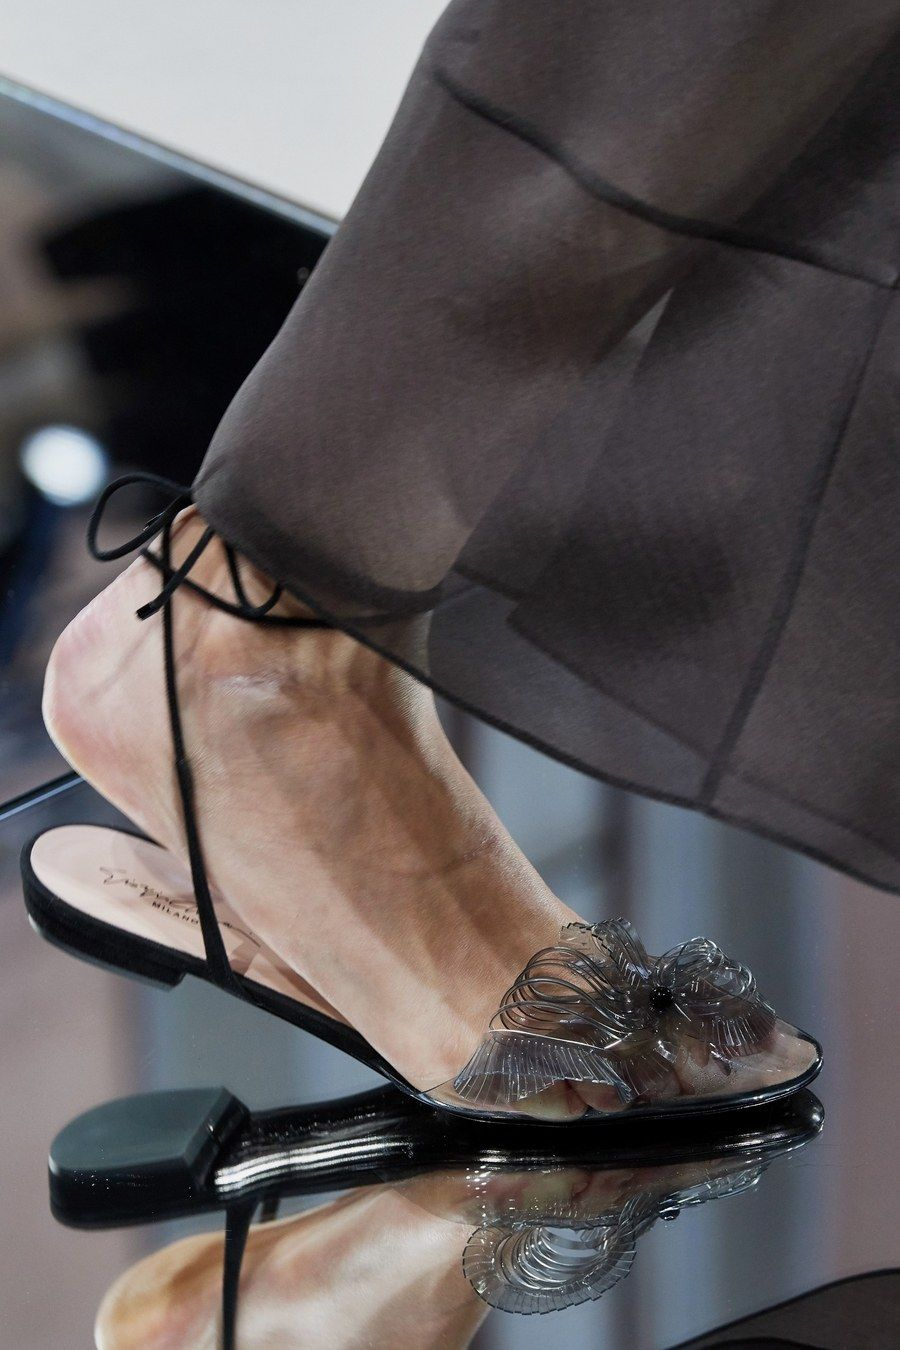 Giorgio Armani Spring 2020 Ready To Wear Fashion Show Jelly Shoes Outfit Trending Shoes Fashion Shoes